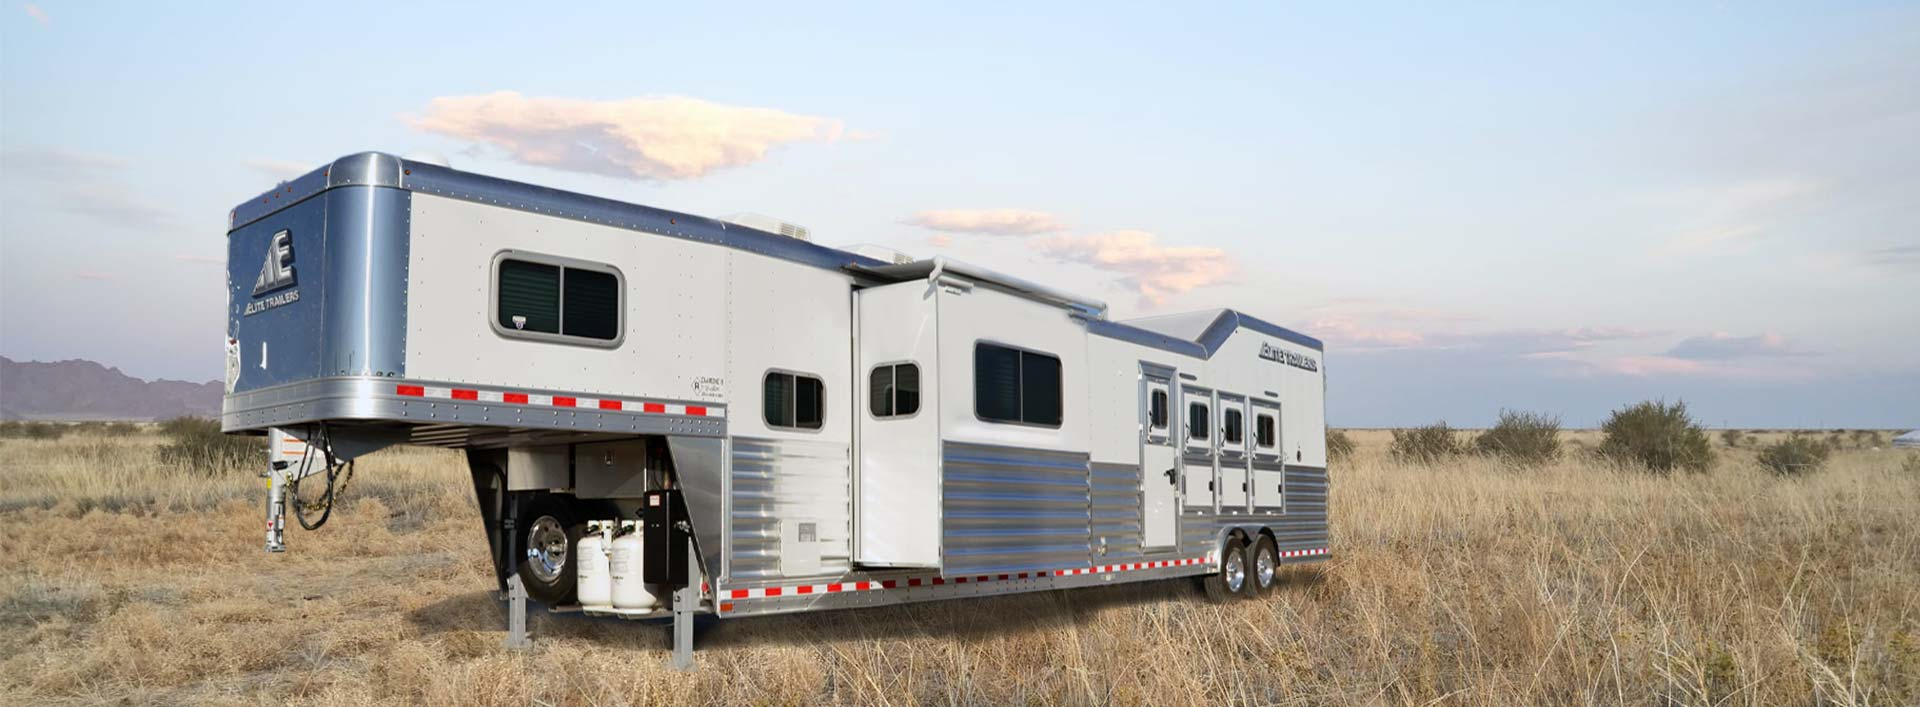 Horse Trailers for ranchers